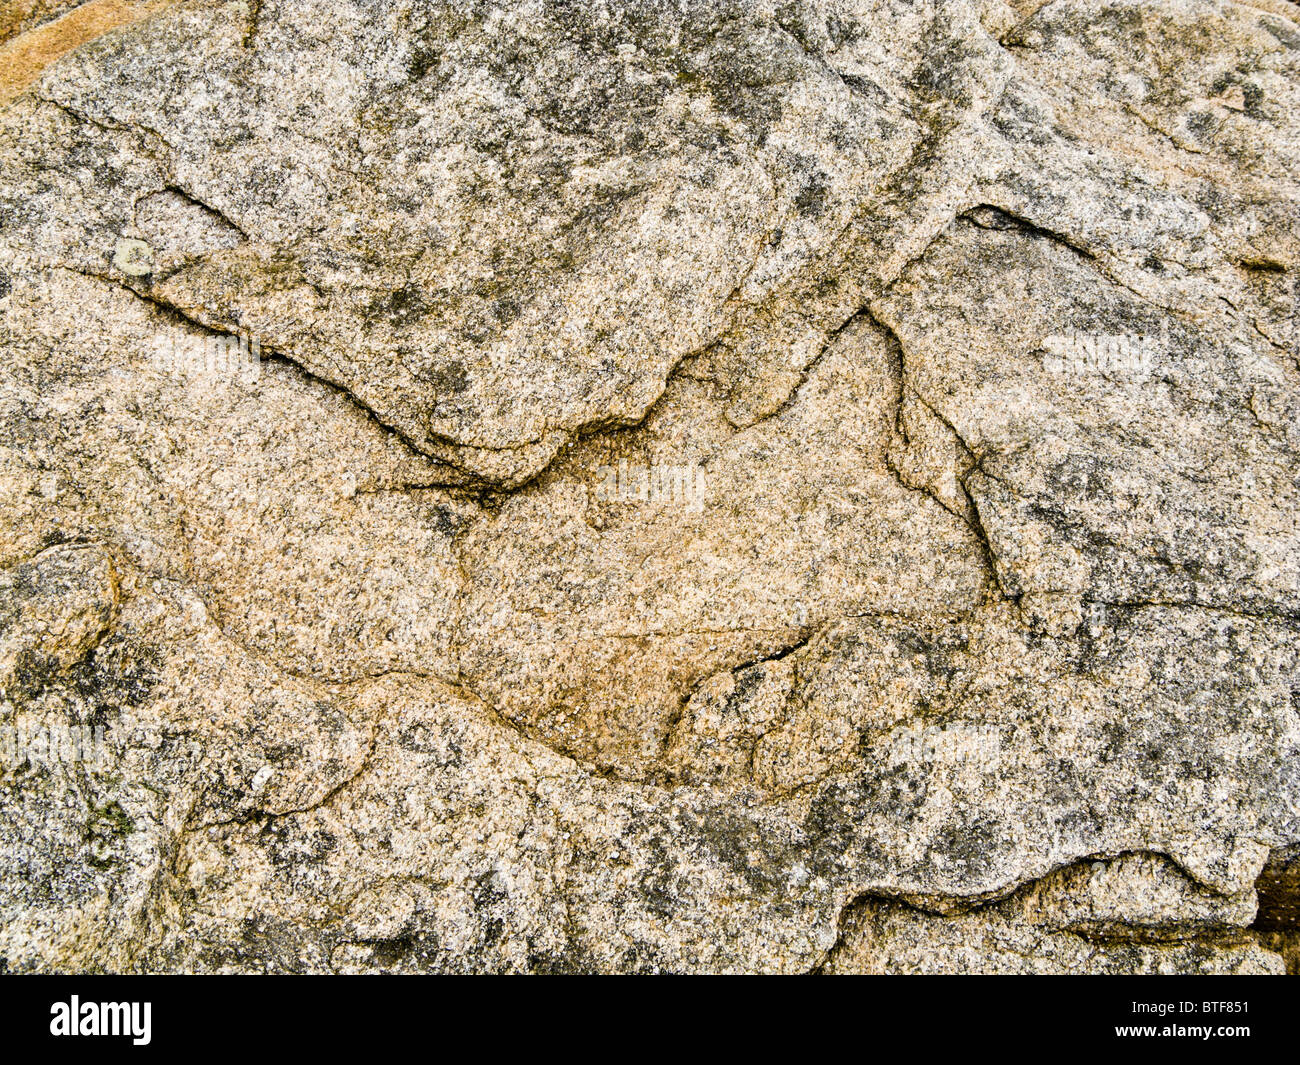 Rock patterns close up - Stock Image